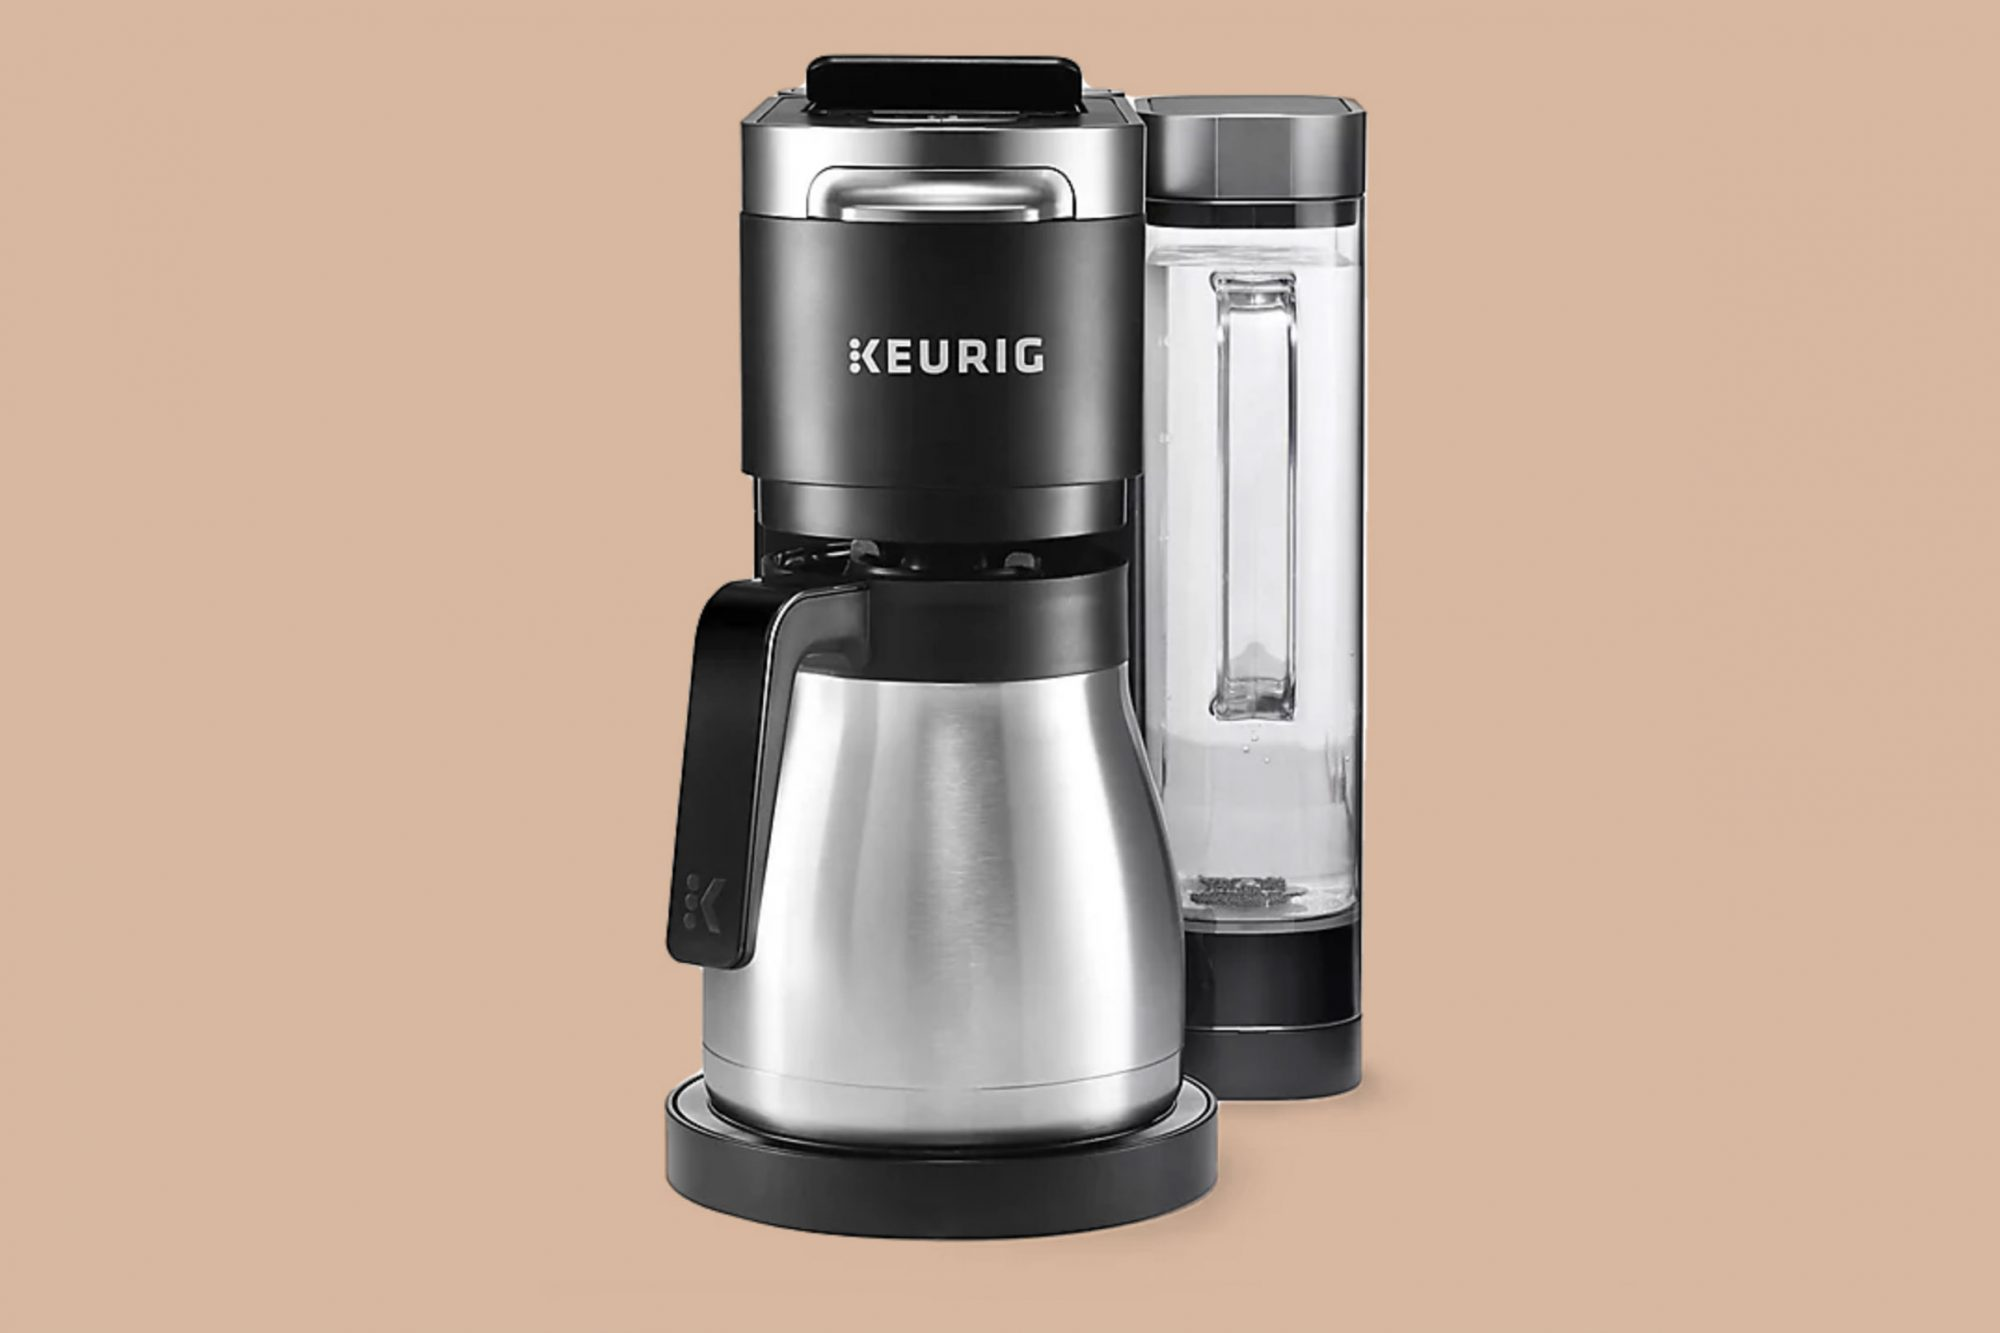 Keurig K-Duo Plus Coffee Maker with Single Serve K-Cup Pod & Carafe Brewer